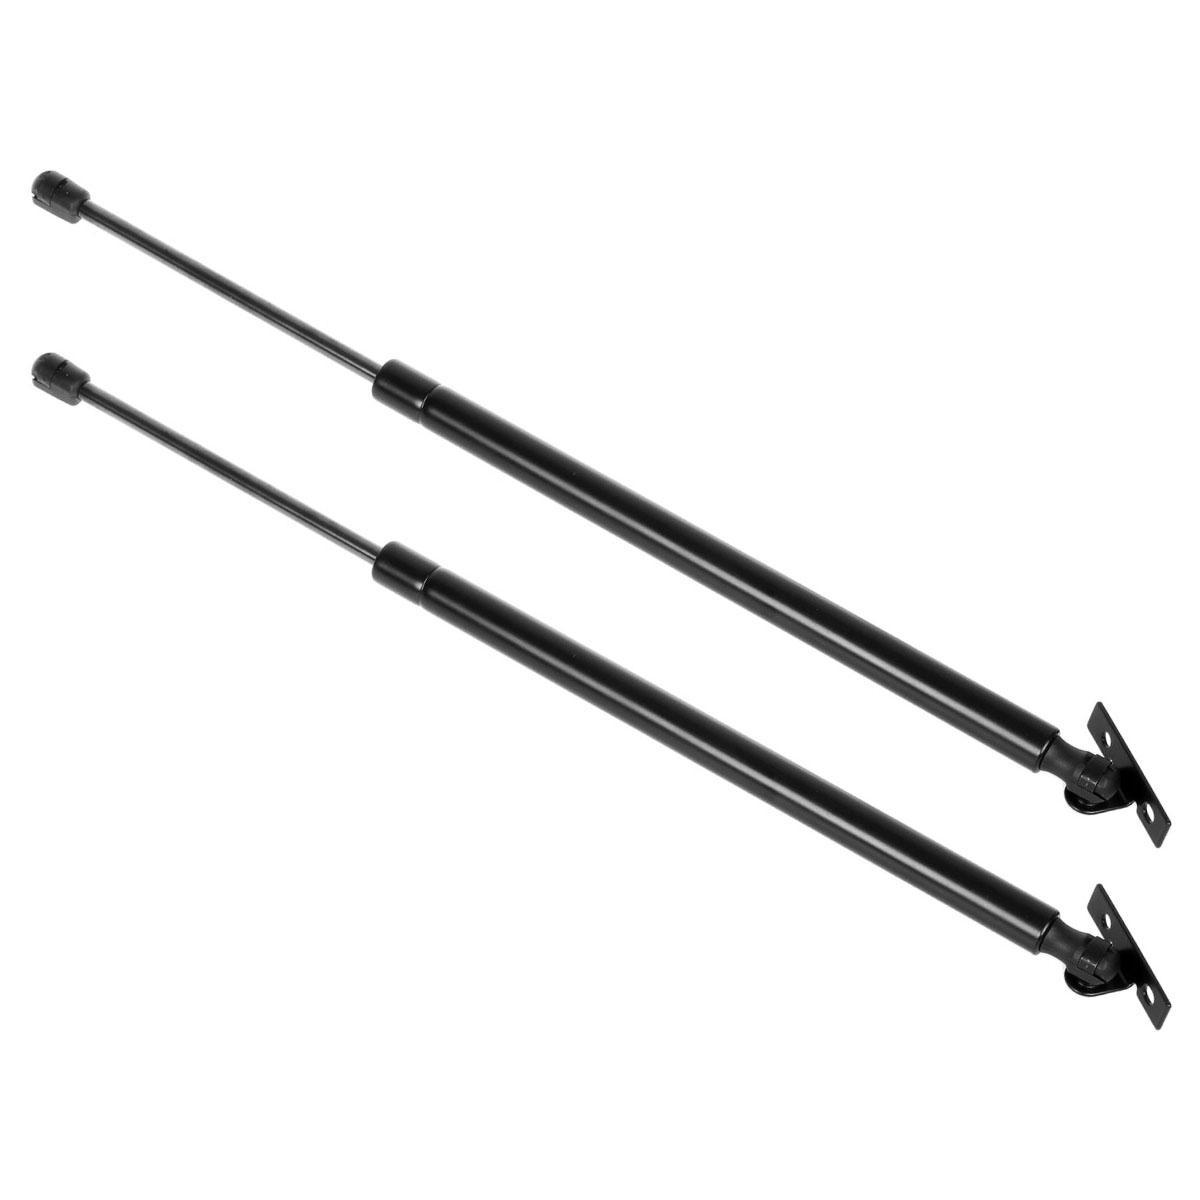 Qt2 SG214022 Hatch Lift Support Shocks Struts For 1997